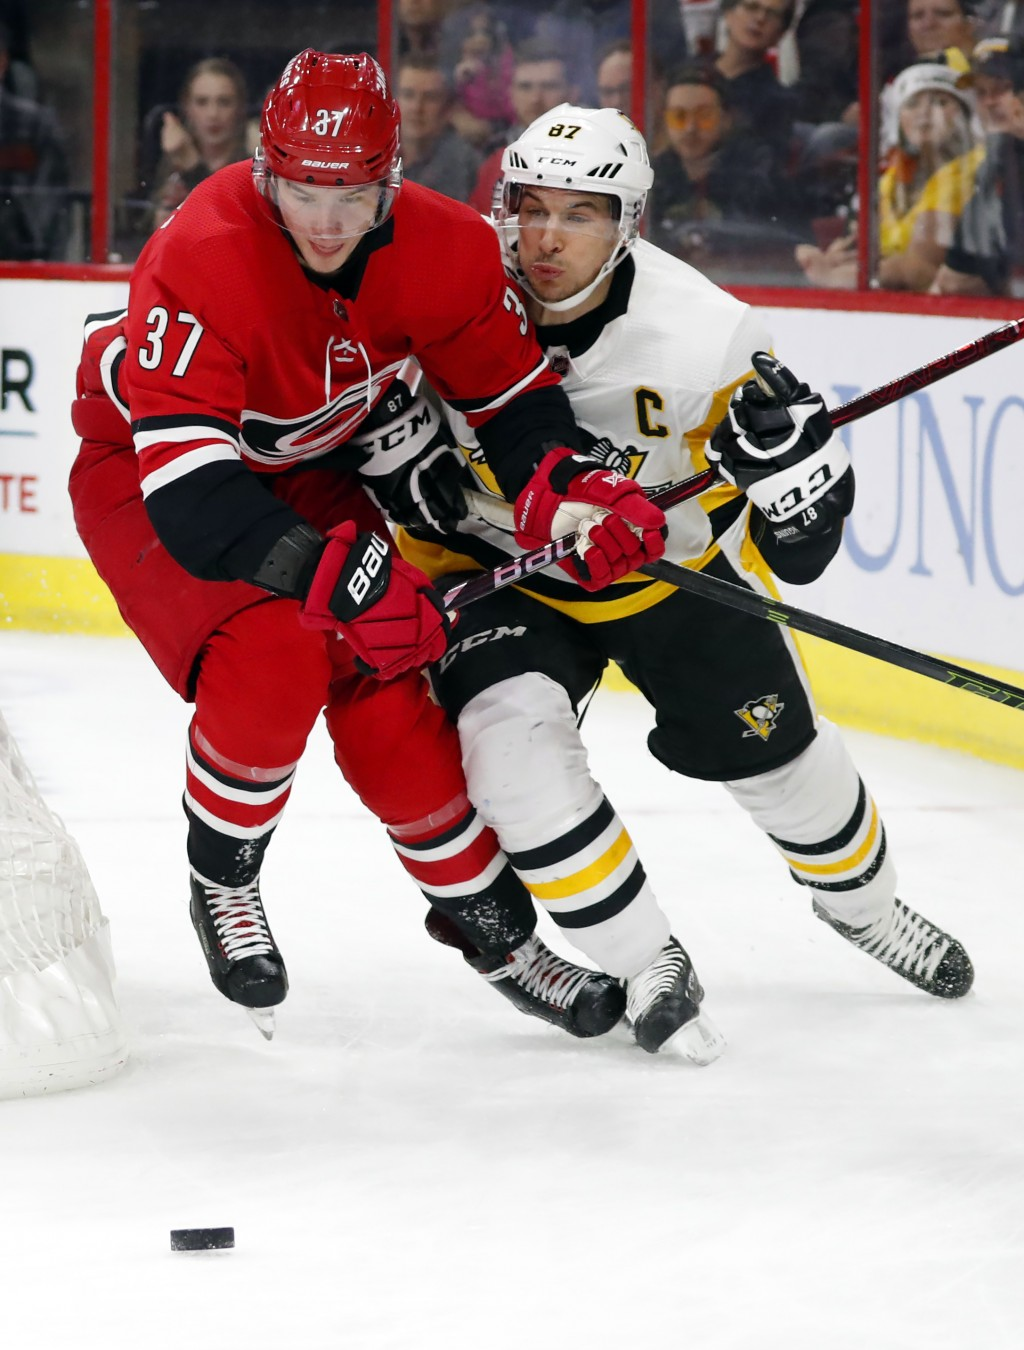 Carolina Hurricanes' Andrei Svechnikov (37) battles with Pittsburgh Penguins' Sidney Crosby (87) behind the net during the first period of an NHL hock...